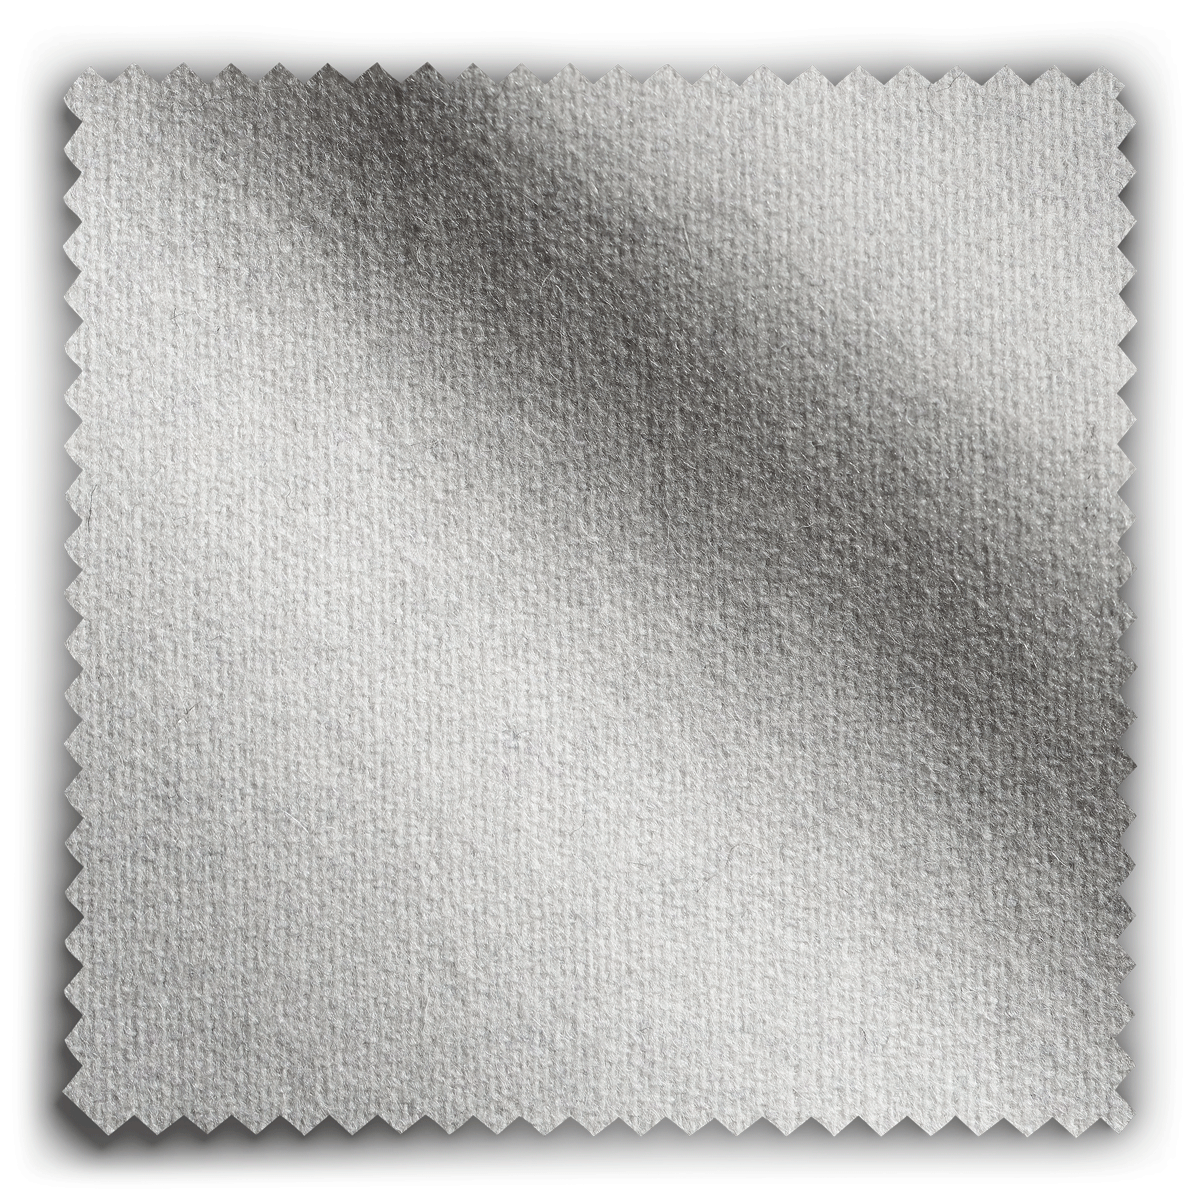 Image of Style Wool Silver Stone fabric